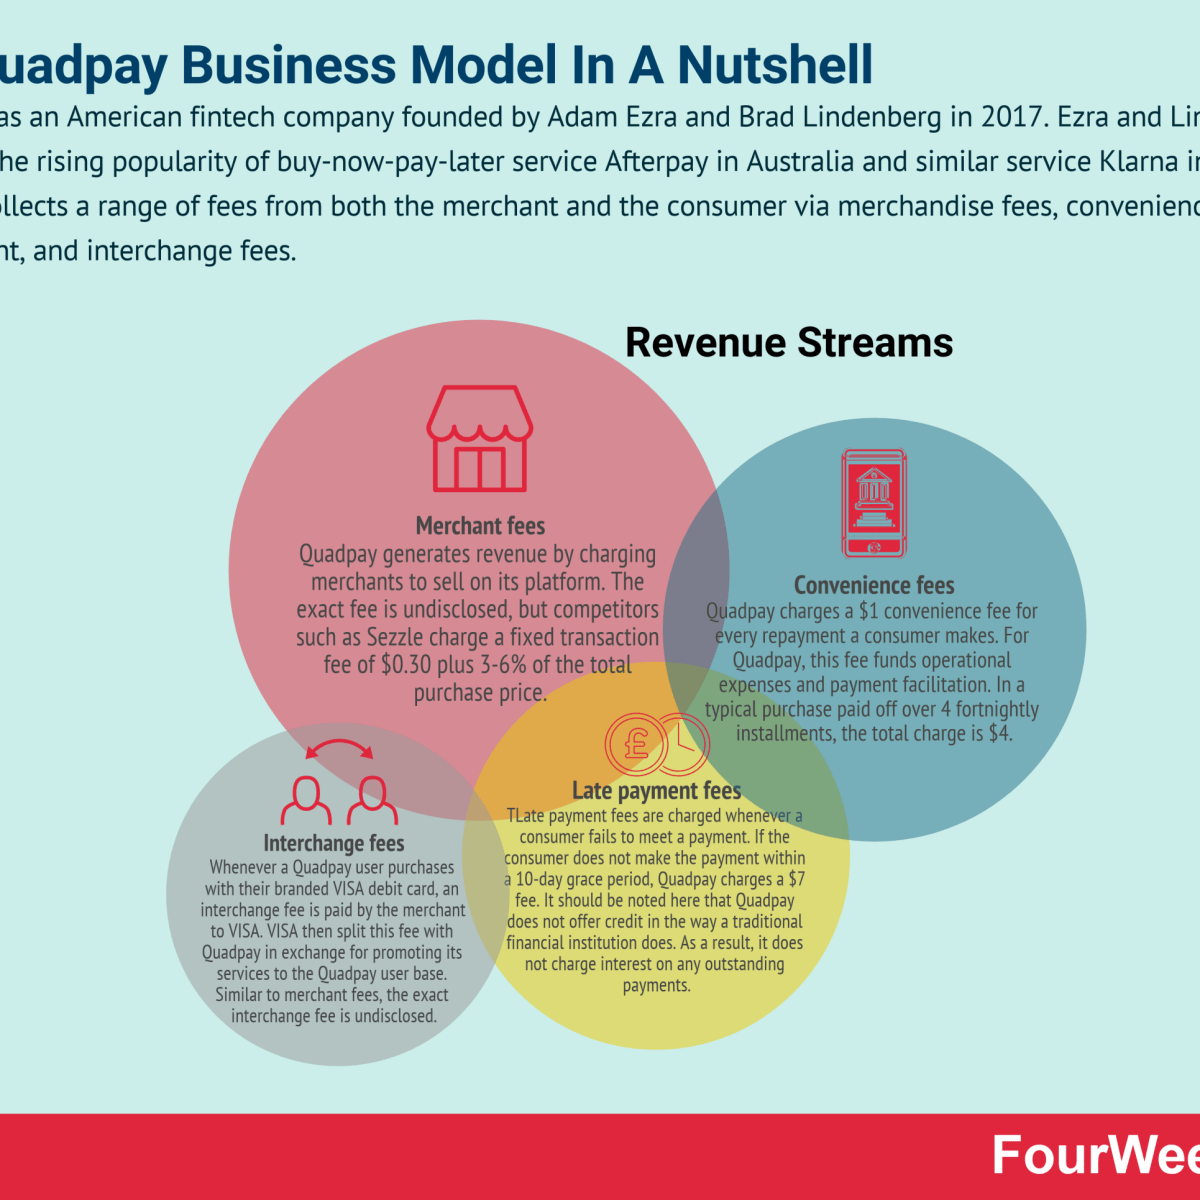 How Does Quadpay Make Money? The Quadpay Business Model In A Nutshell